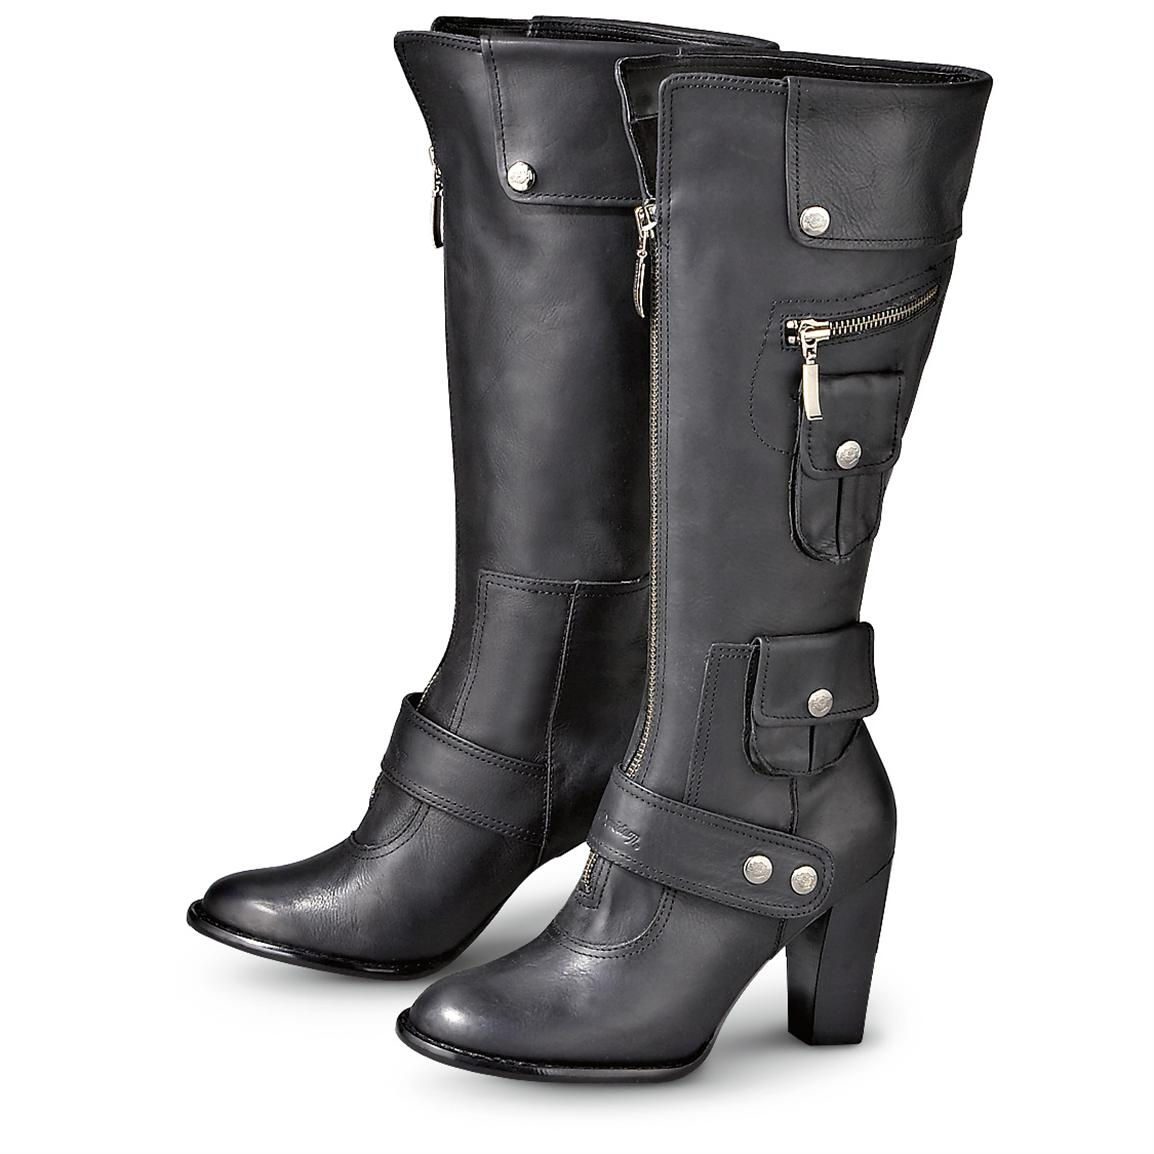 Harley Davidson Womens Shoes Clearance